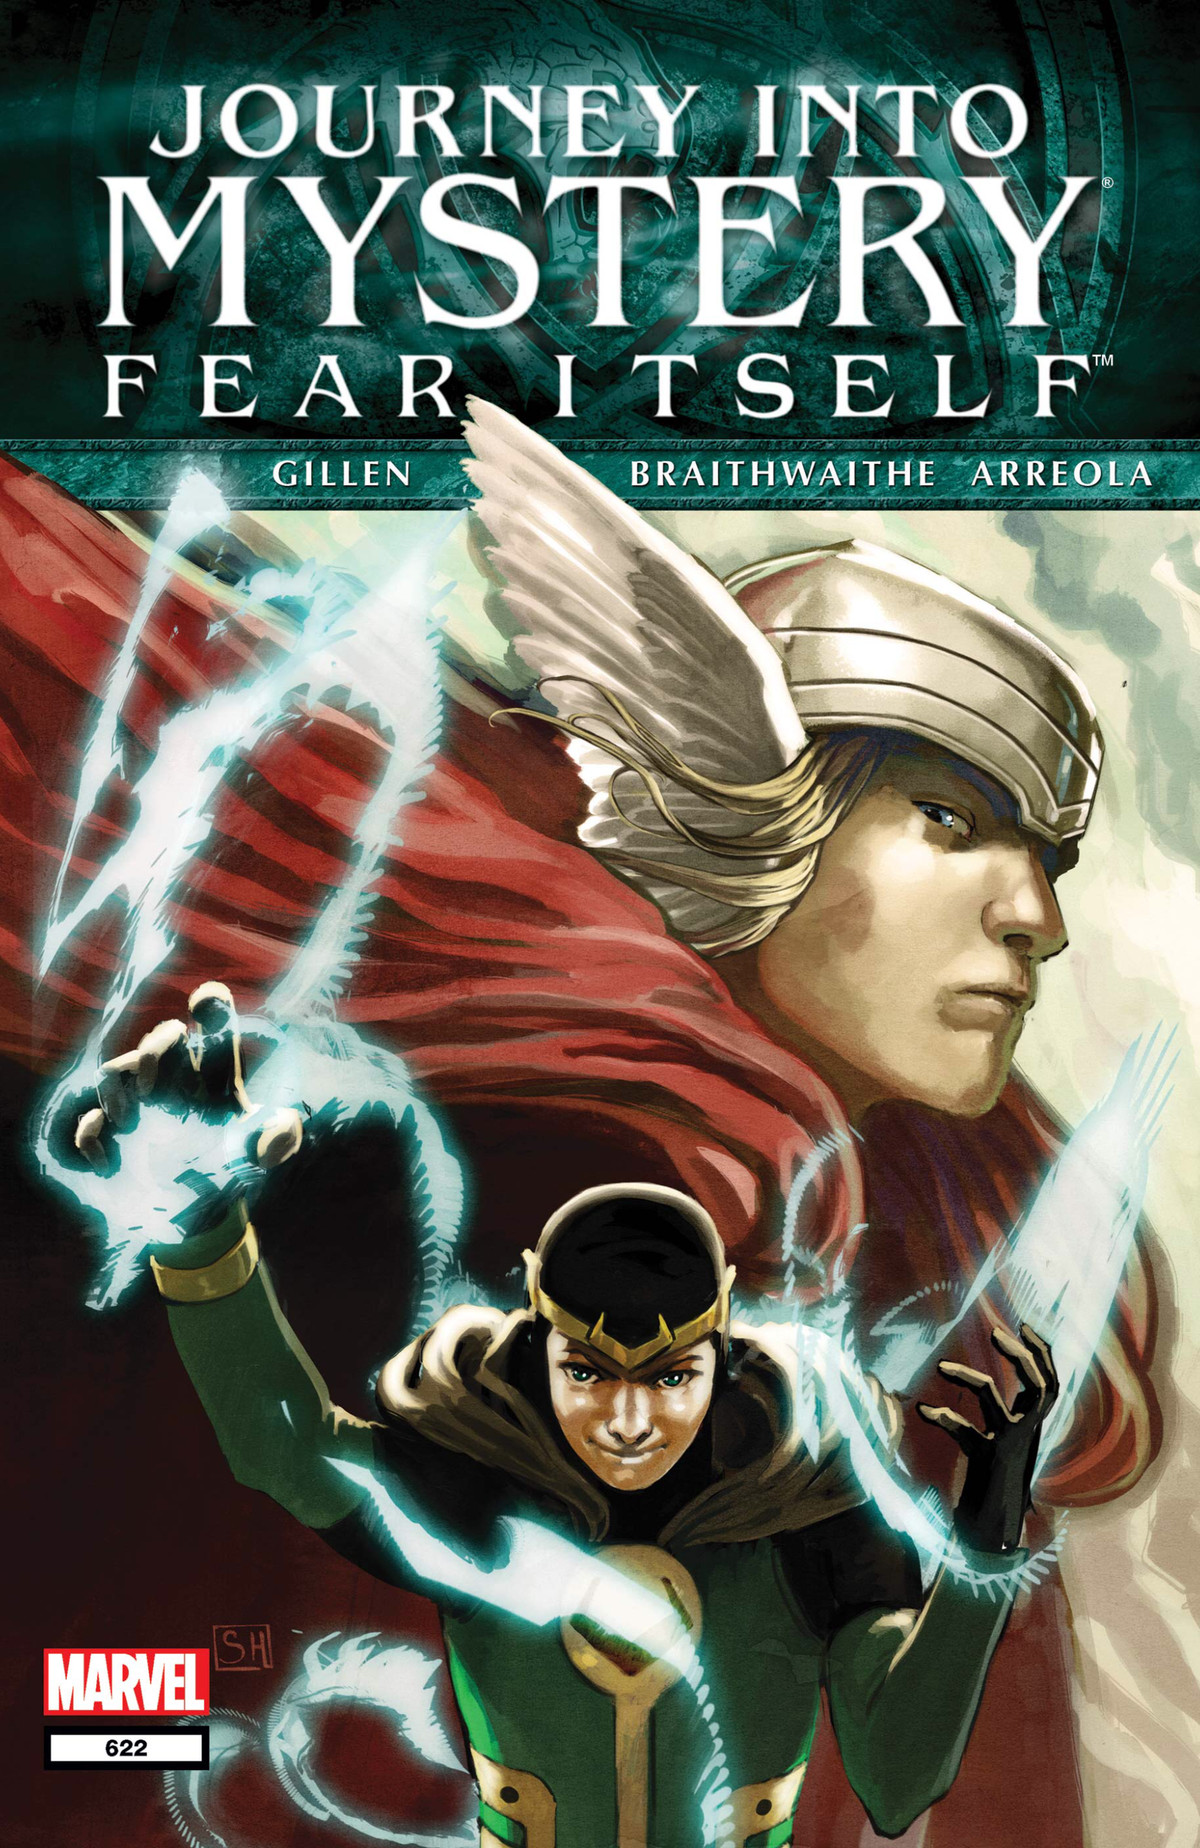 A young Loki works glowing magic shapes as a concerned adult Thor looks on on the cover of Journey Into Mystery: Fear Itself, Marvel Comics (2012).